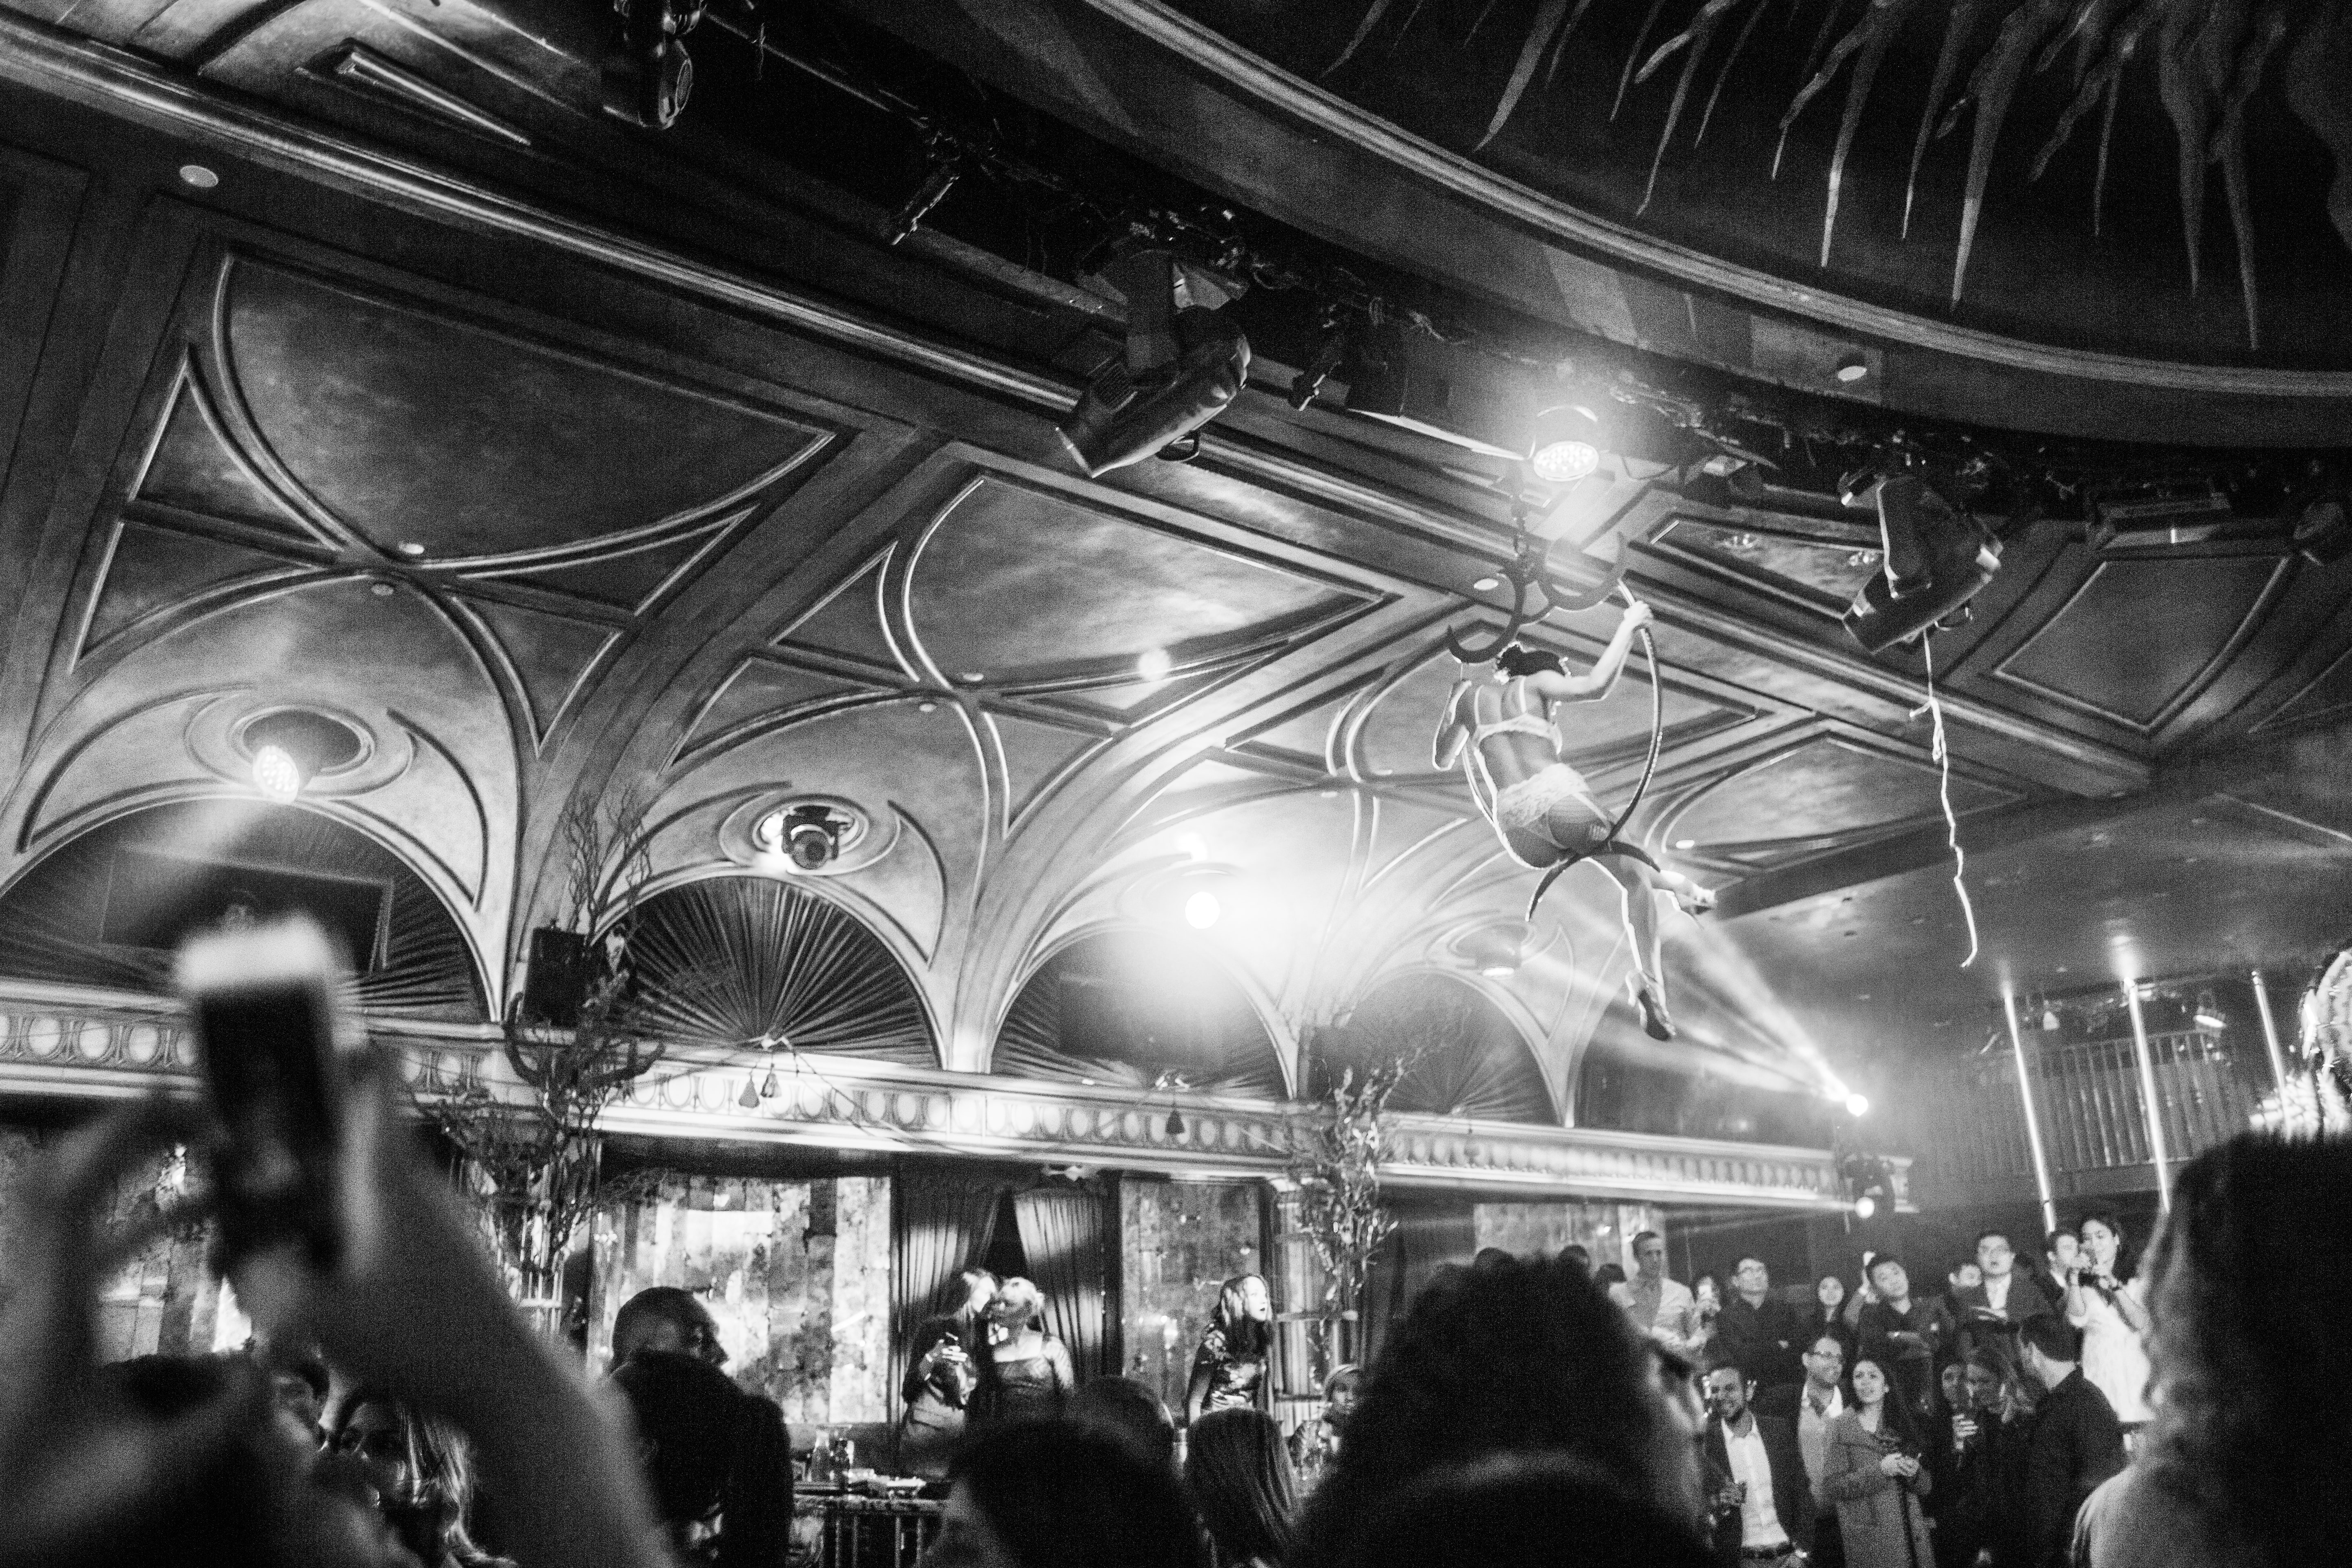 grayscale photography of woman hanging near ceiling surrounded by crowd